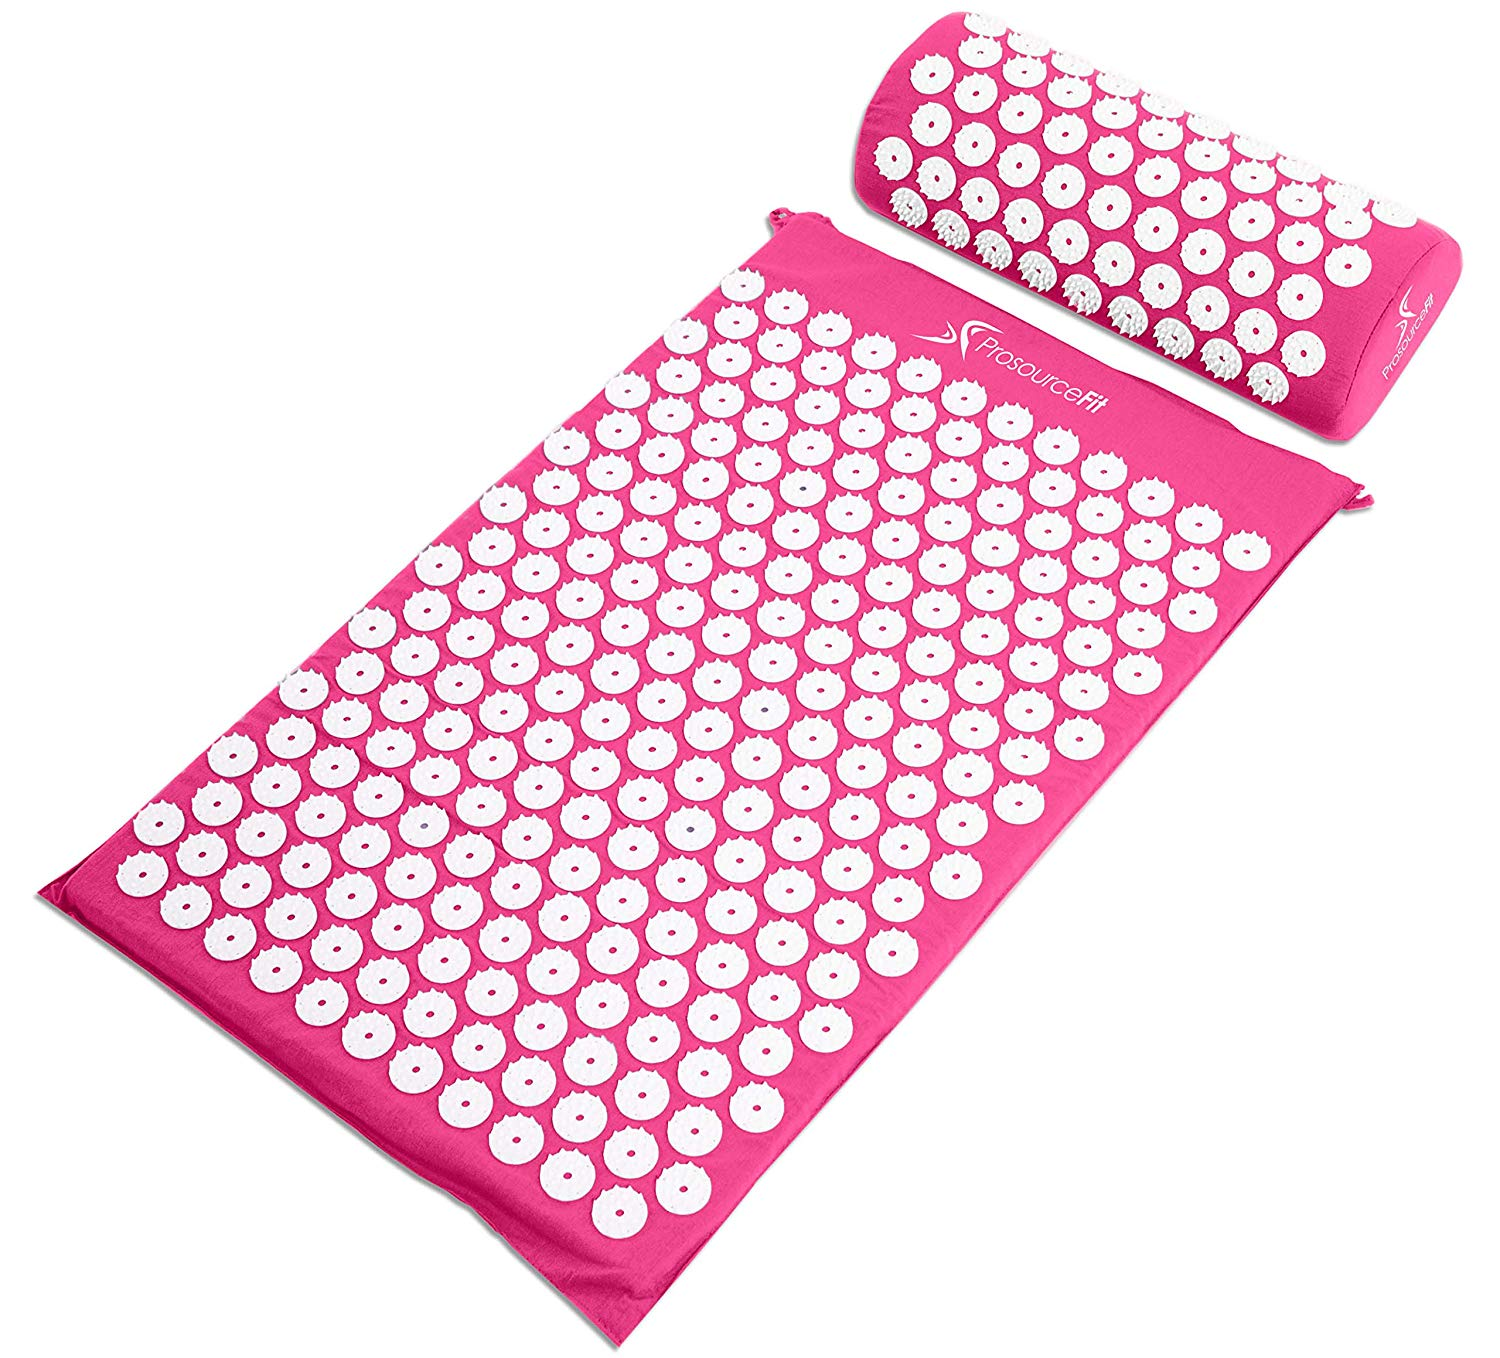 tension tamer - acupressure mat - This provides amazing relief of general tension and also is phenomenal at promoting good sleep, when used right before bed! First time or two is a bit intense, but you will acclimate and really crave it, in no time.